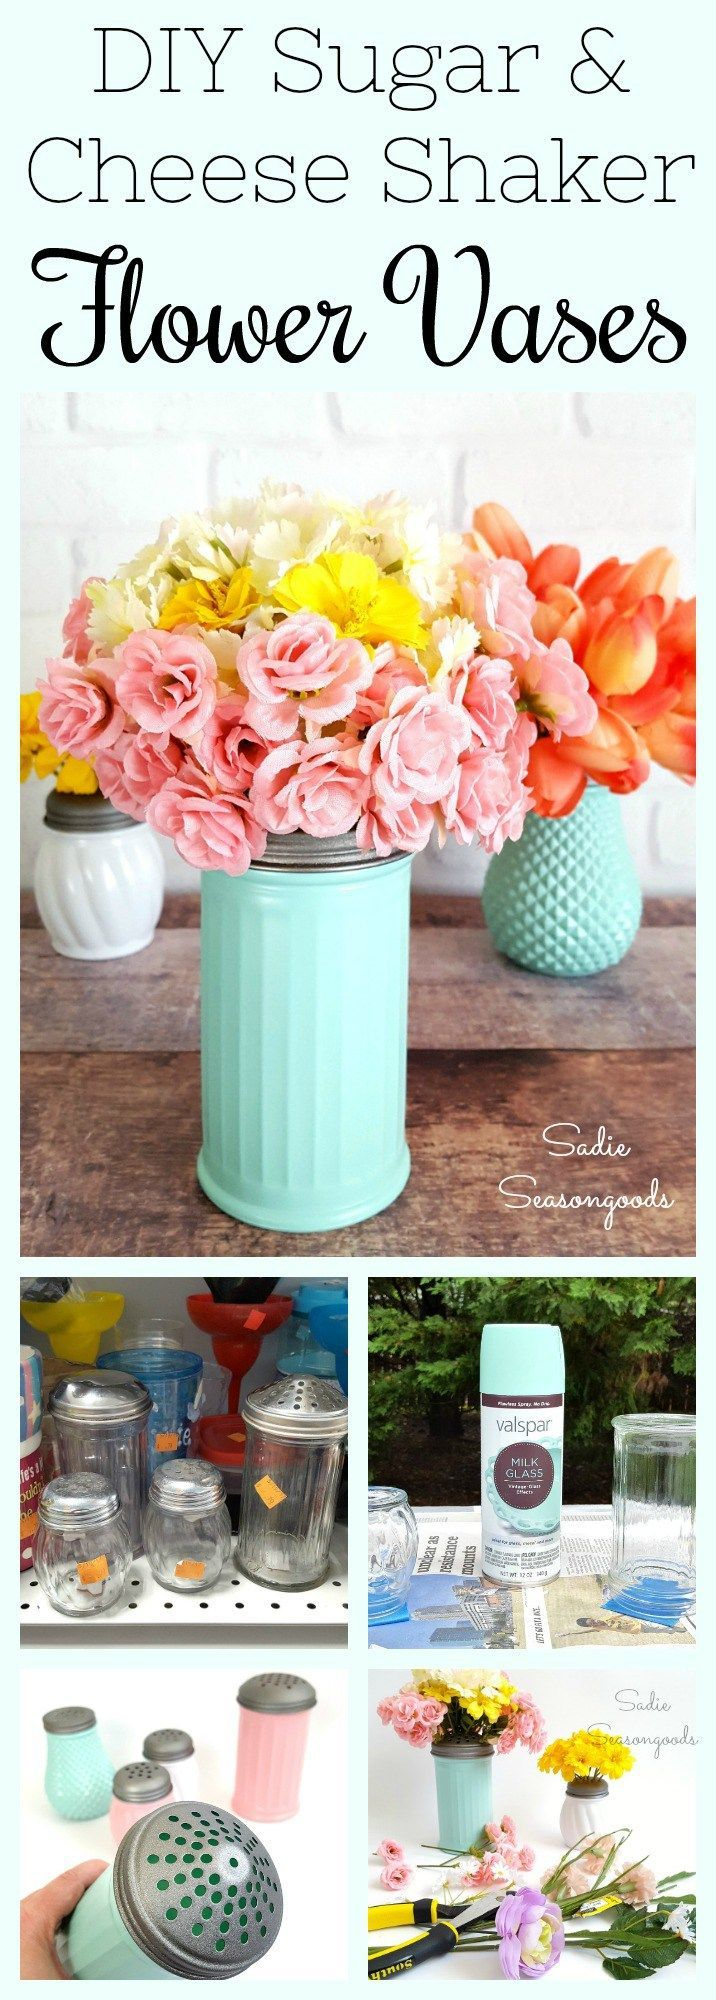 Some people see a cheese or sugar shaker, but me? I see a vase with a built in flower frog!! From the dollar store or thrift shop, cheese & sugar shakers are pretty common, but they really are the perfect way to arrange flowers! Ideal for a DIY wedding on a budget...or really, just party or home decor. I gave mine a milk glass paint job to hide the stems and they've been repurposed and upcycled into a fun and easy craft project. #SadieSeasongoods / www.sadieseasongoods.com